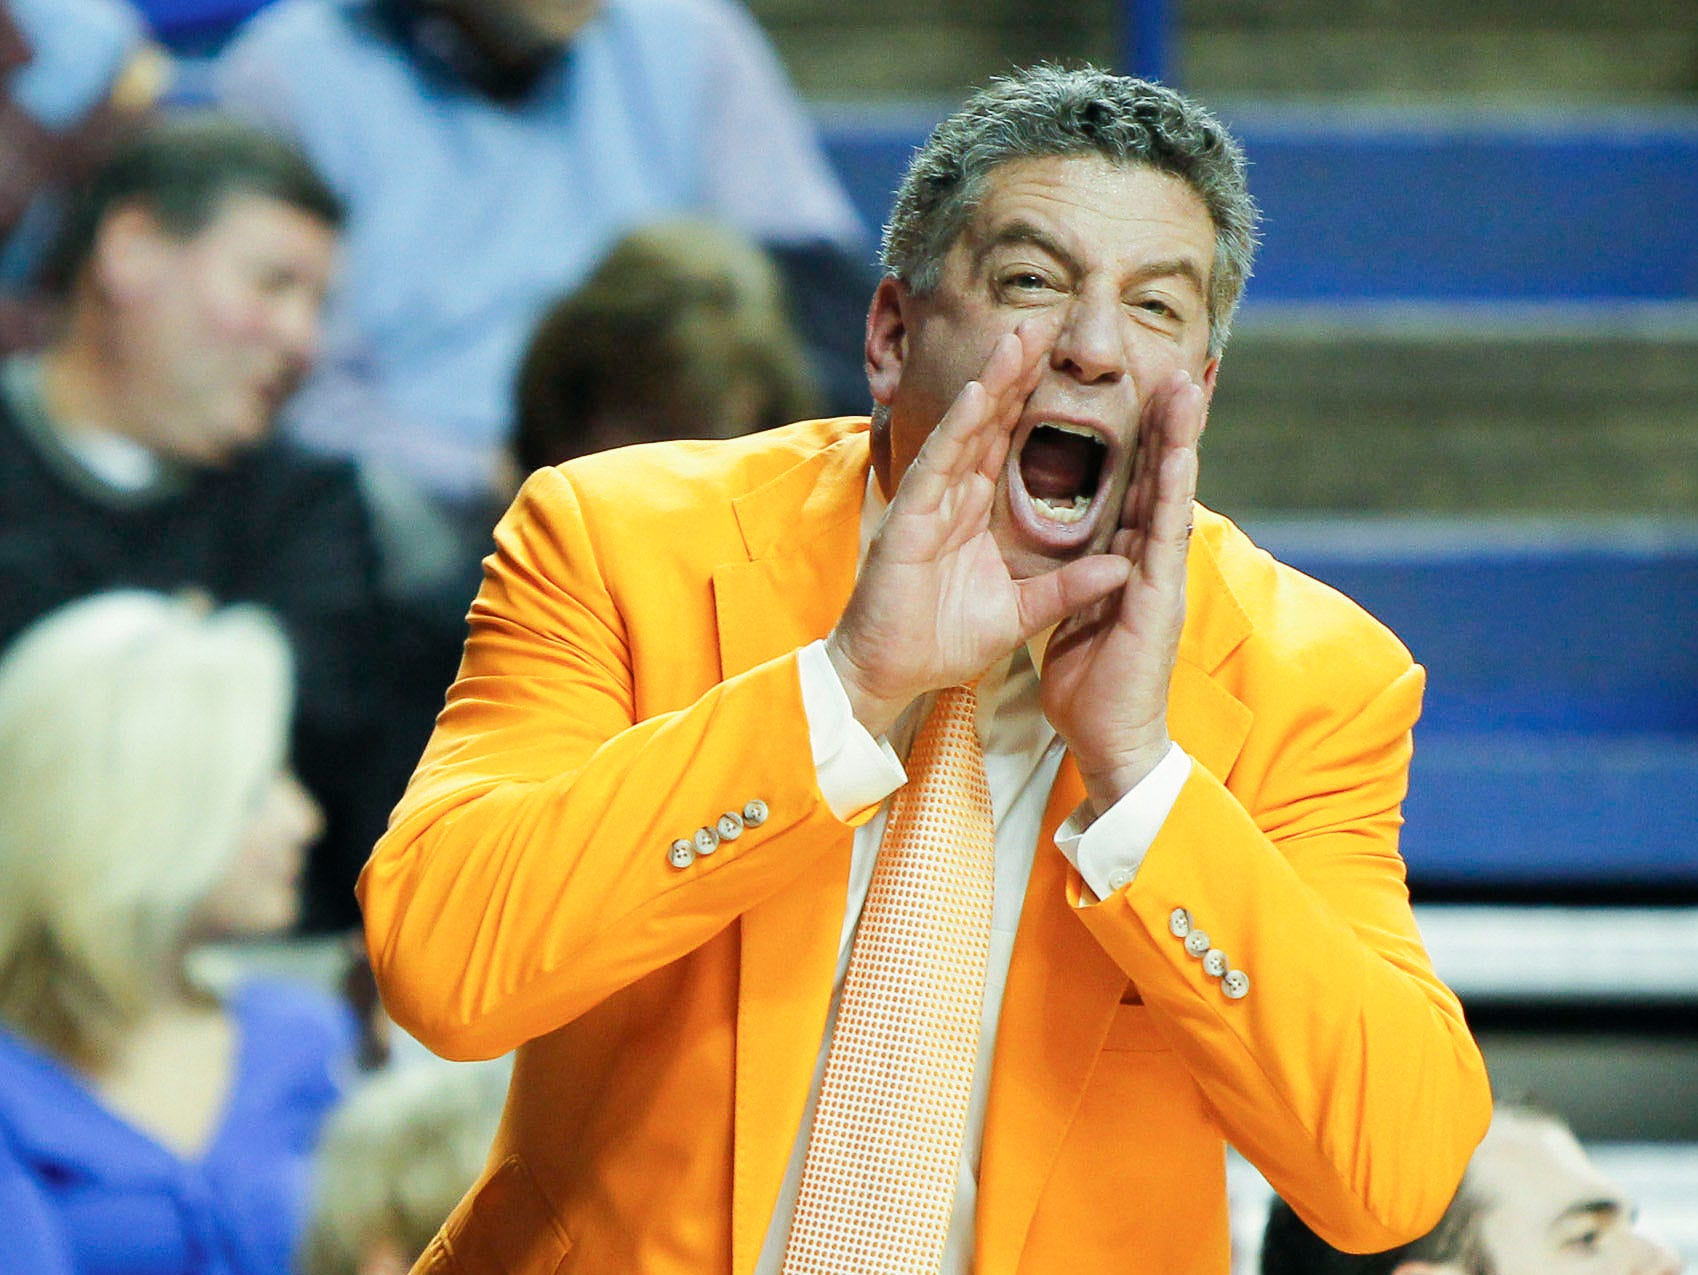 Tennessee coach Bruce Pearl during the game against Kentucky on Tuesday February 8, 2011.